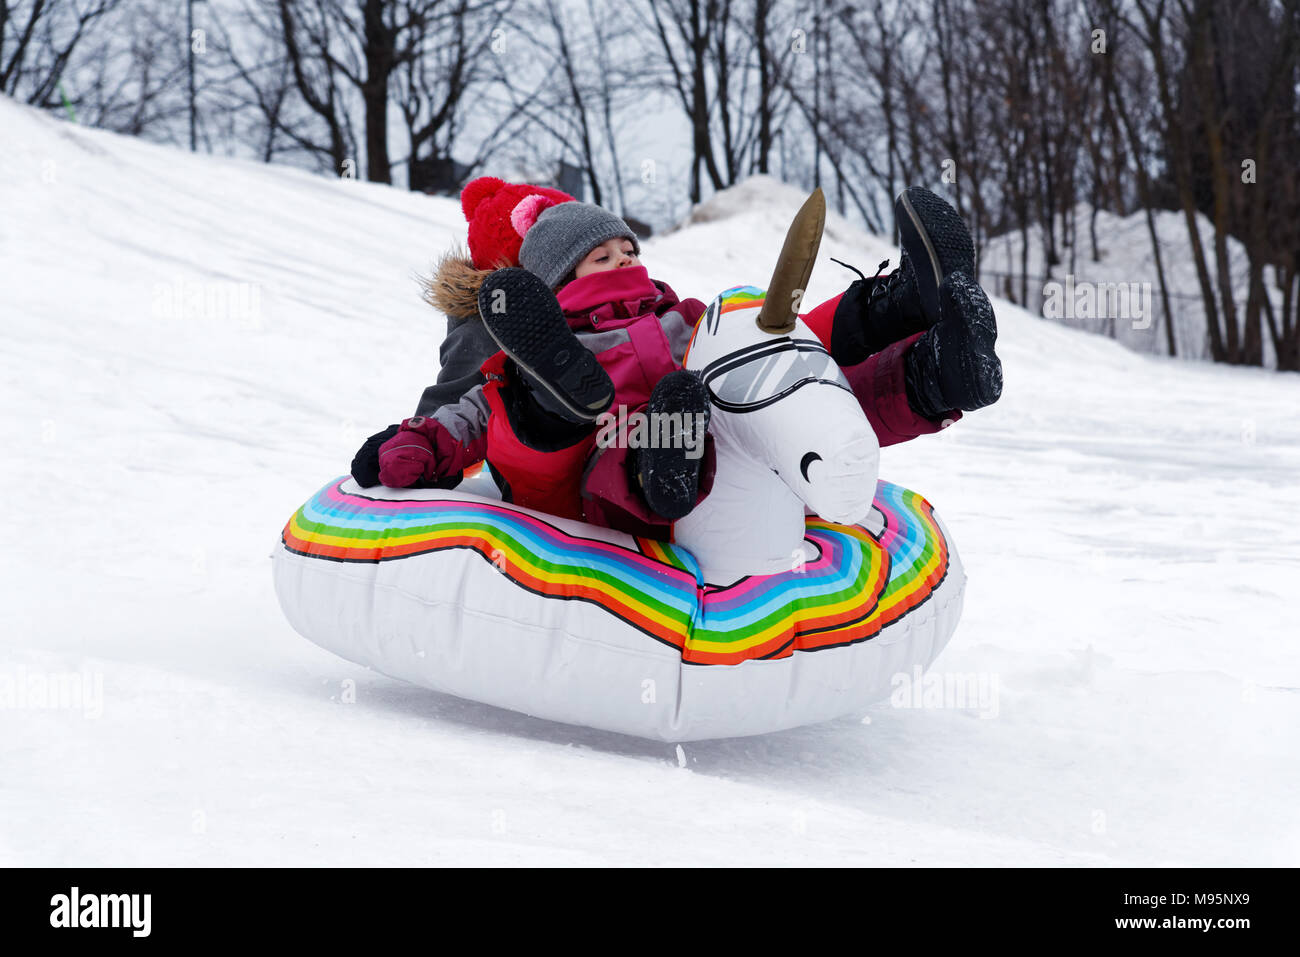 Two girl sliding in the snow on a blow-up unicorn, Quebec Canada - Stock Image